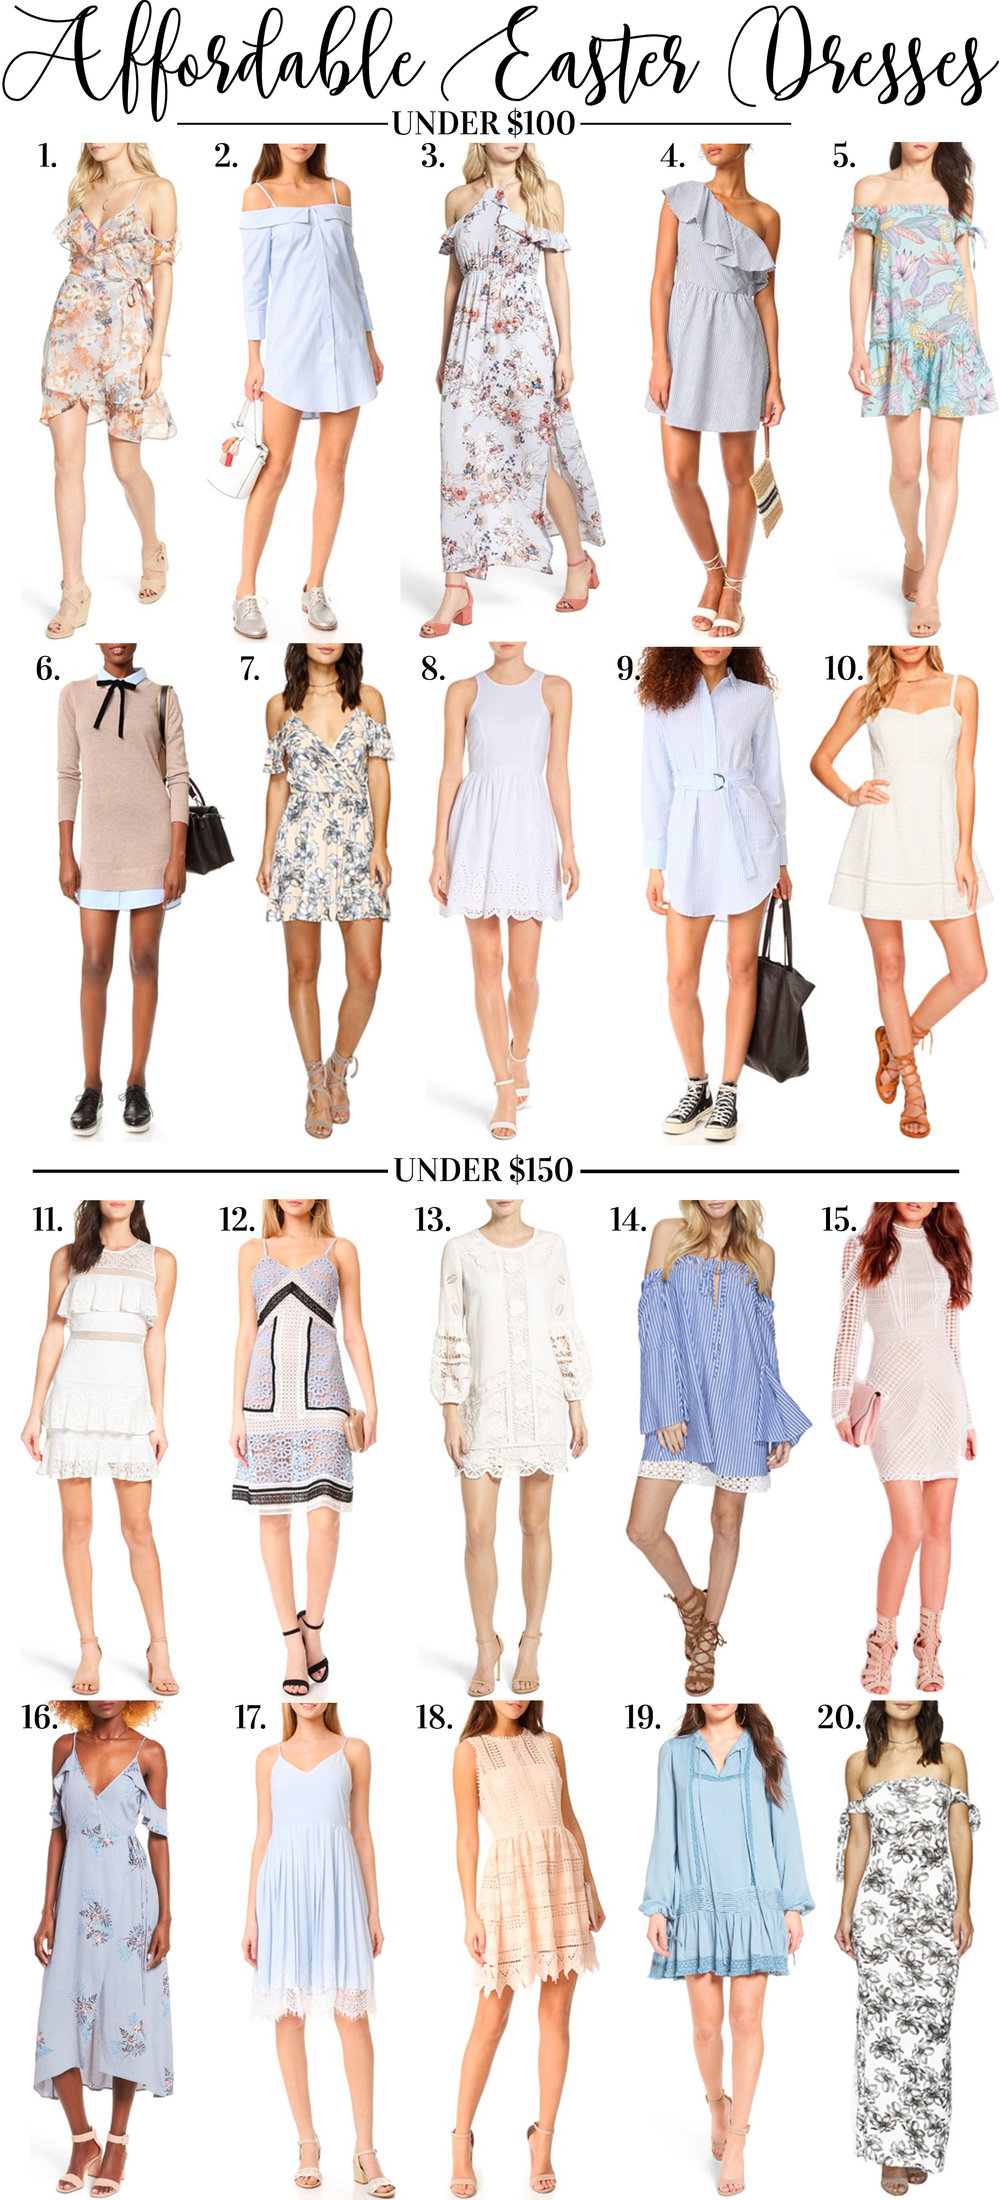 Affordable Easter dresses.  Inexpensive Easter dresses under $150.  Easter dresses under $100 for spring 2017.